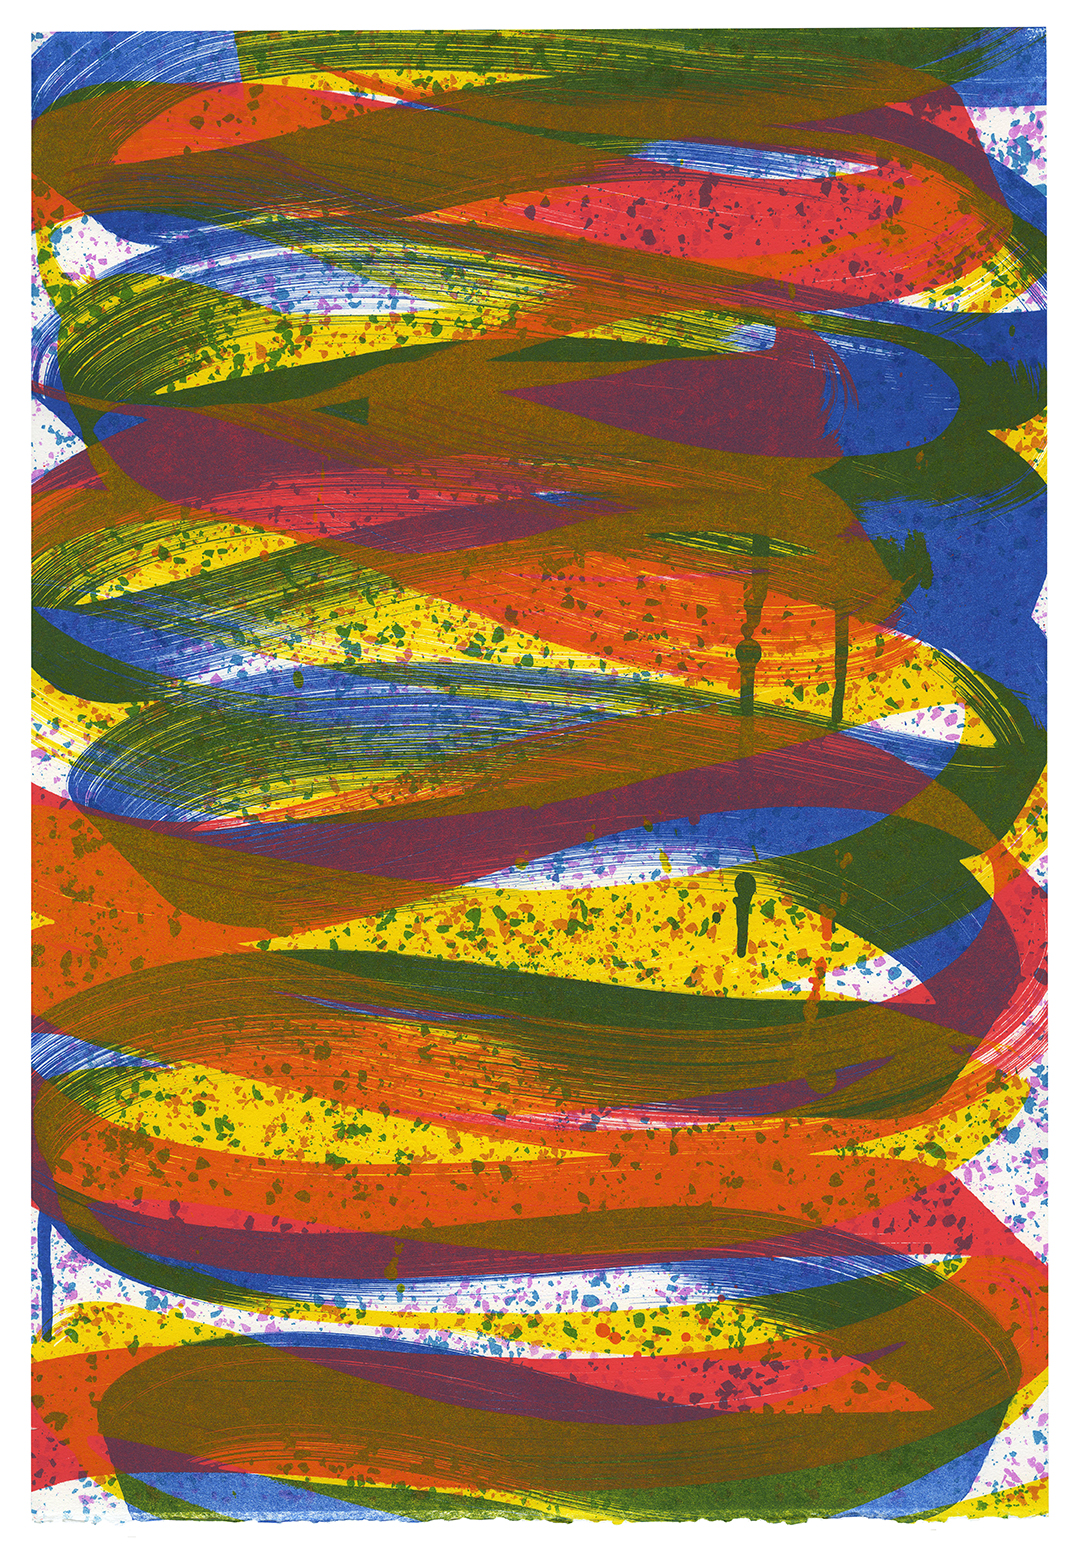 Subway Showtime 7  monoprint 5-color lithograph from photo plates 22x15 inches (bleed print) white Rives BFK 2016 signed, titled and numbered on verso